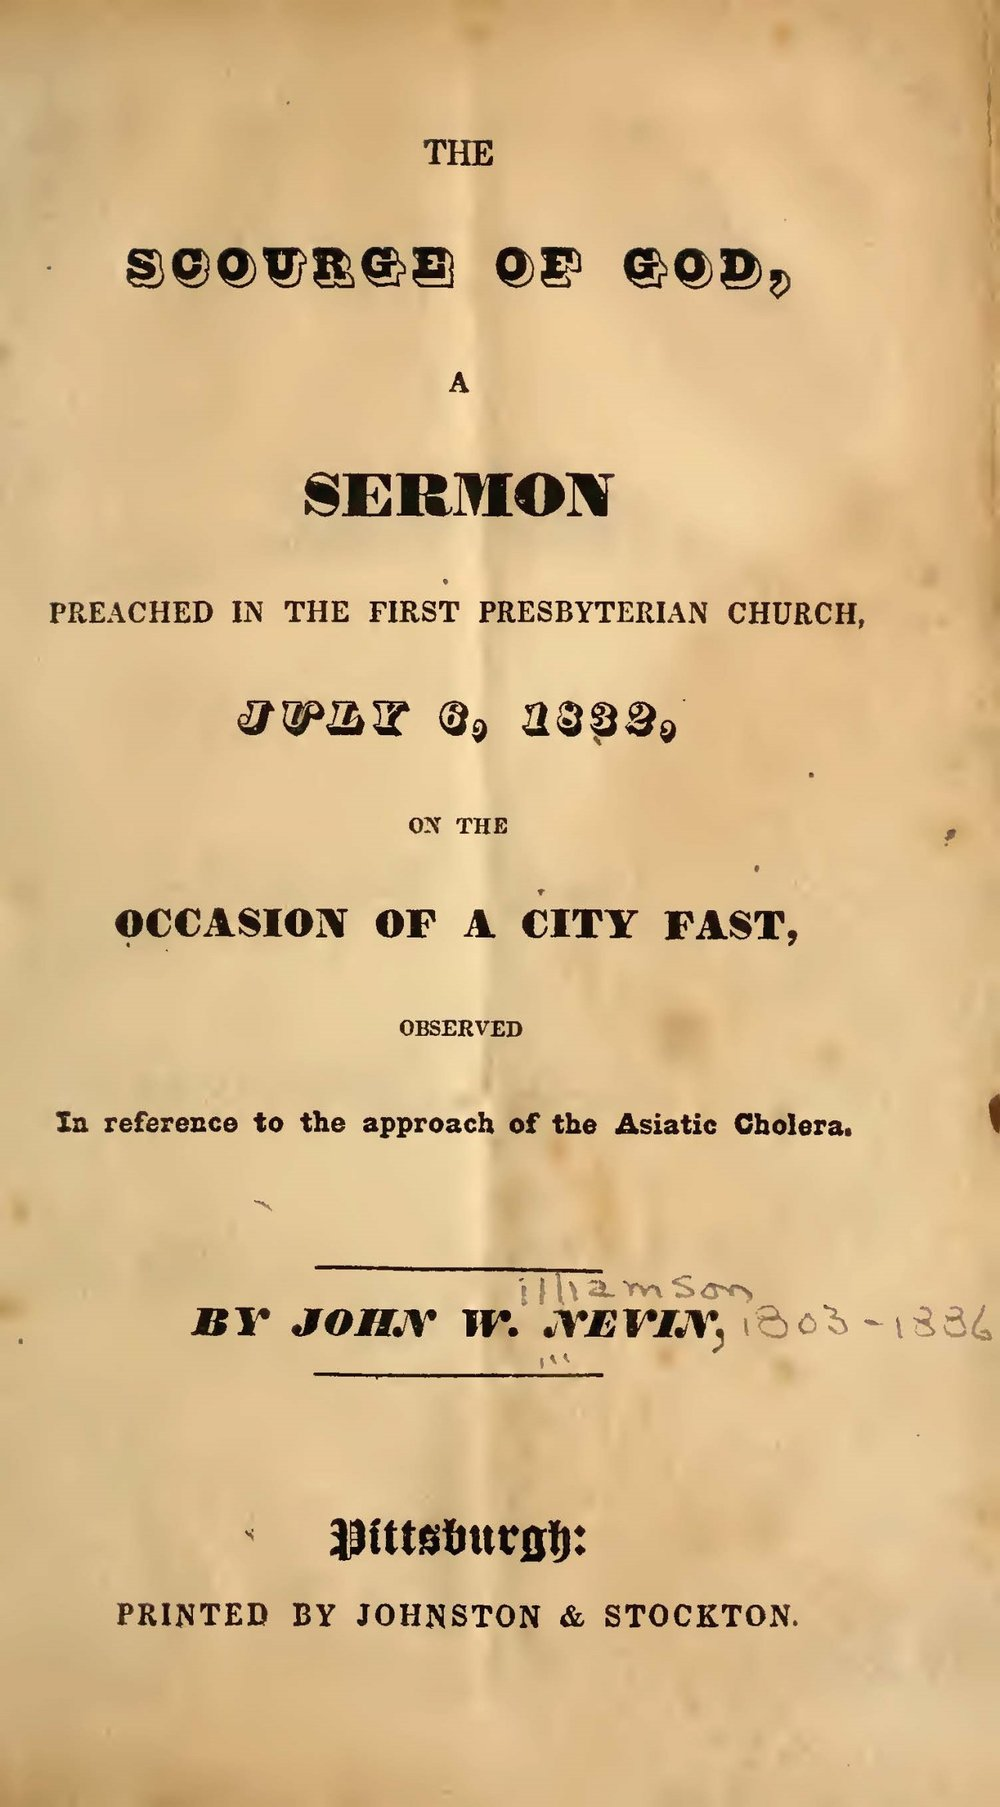 Nevin, John Williamson, The Scourge of God Title Page.jpg